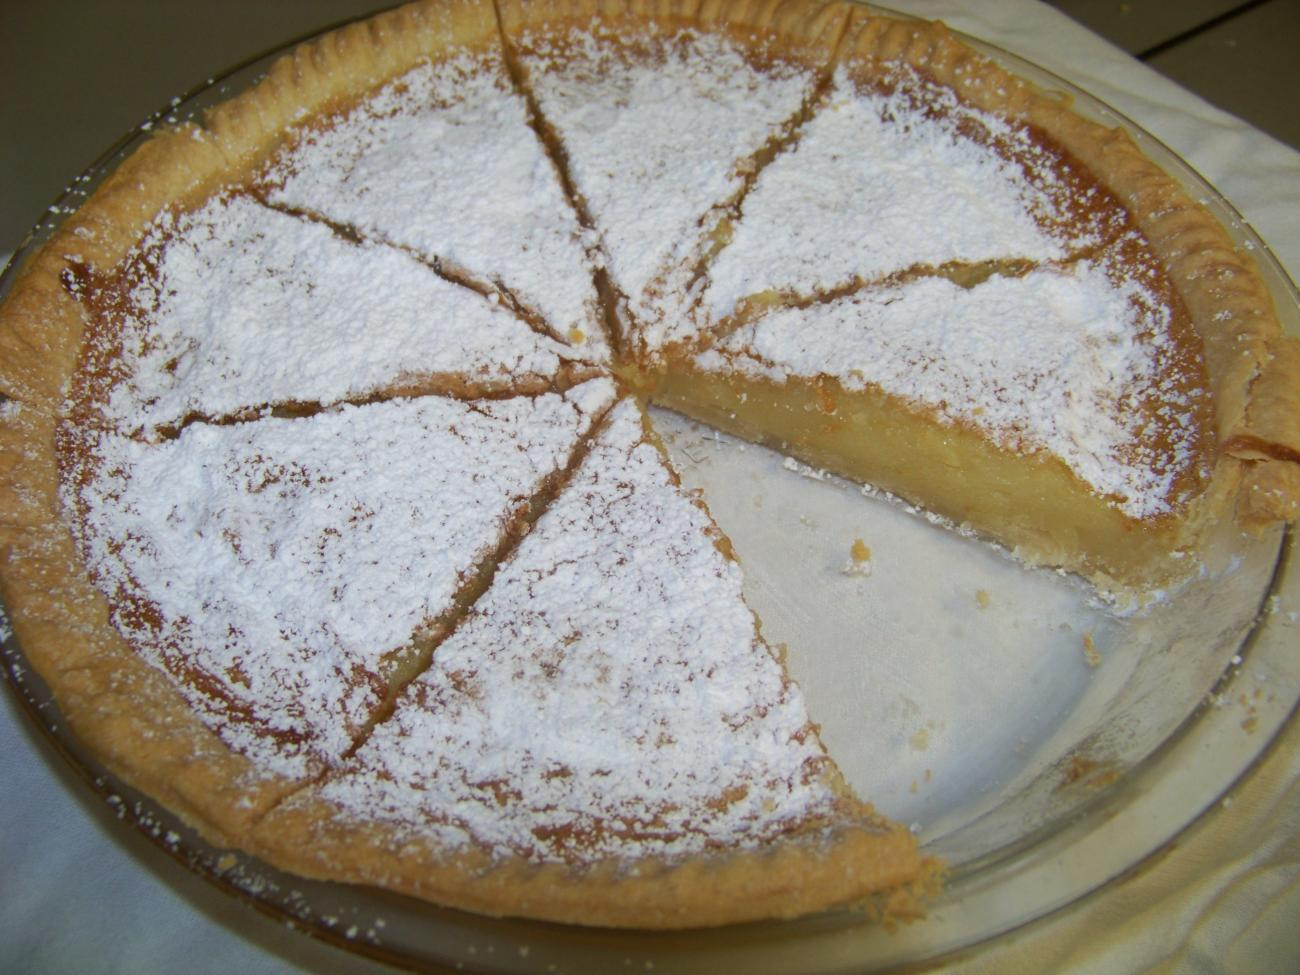 Recipe for Sandy's Lemon Chess Pie